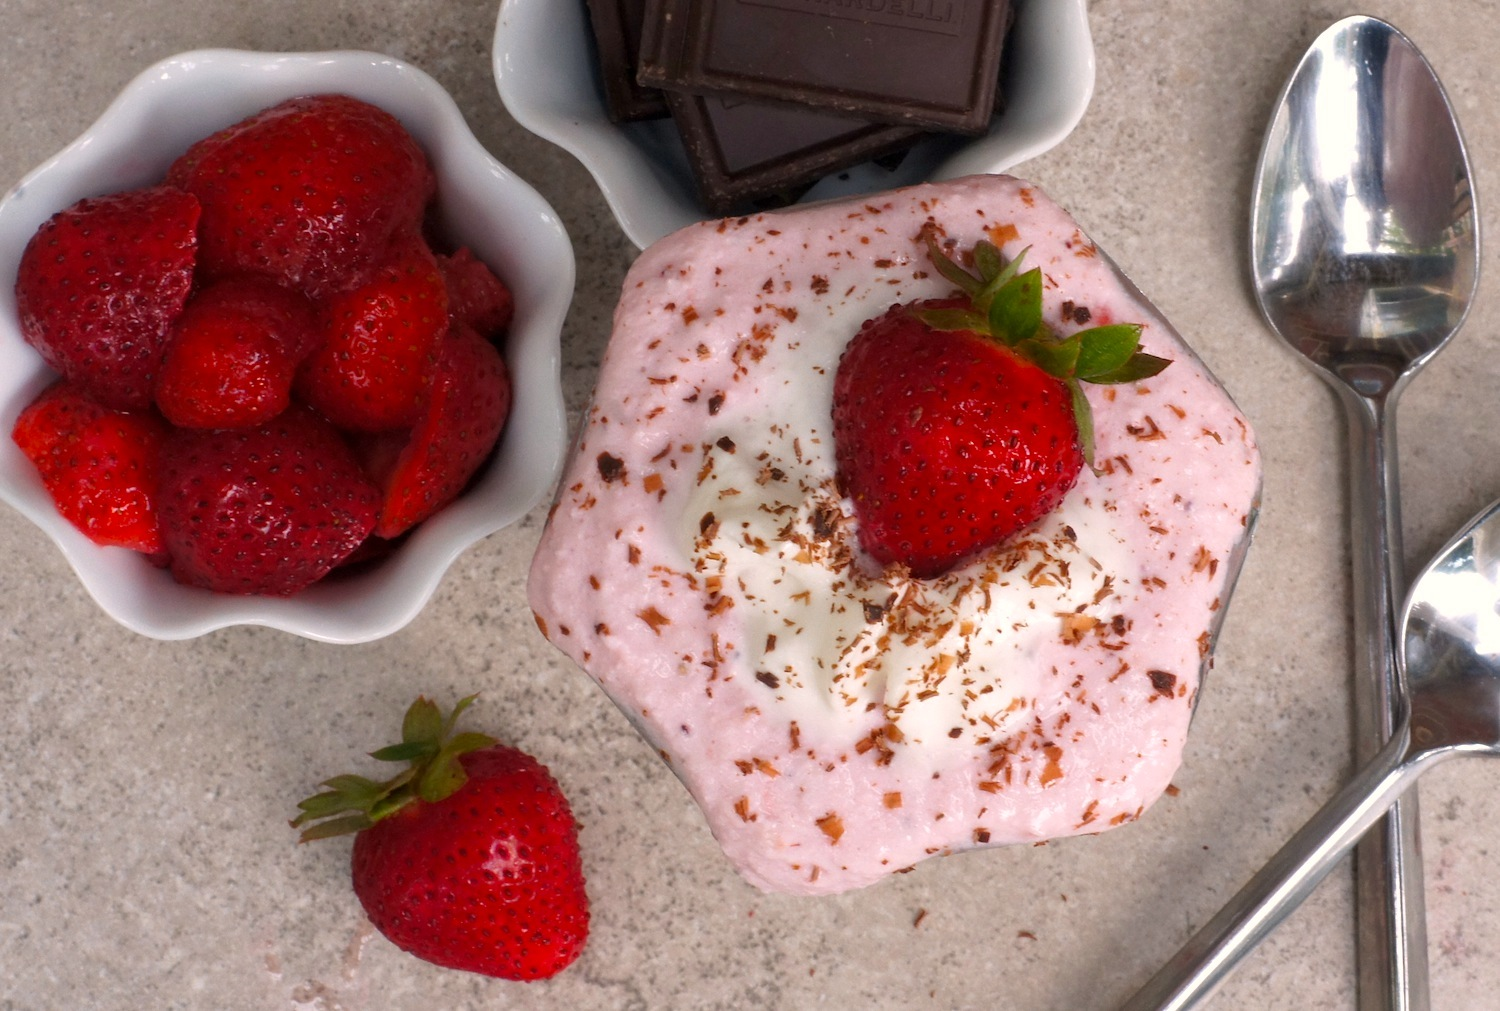 5-Minute Strawberry Cheesecake Mousse {Gluten-Free, Grain-Free, + Vegetarian}